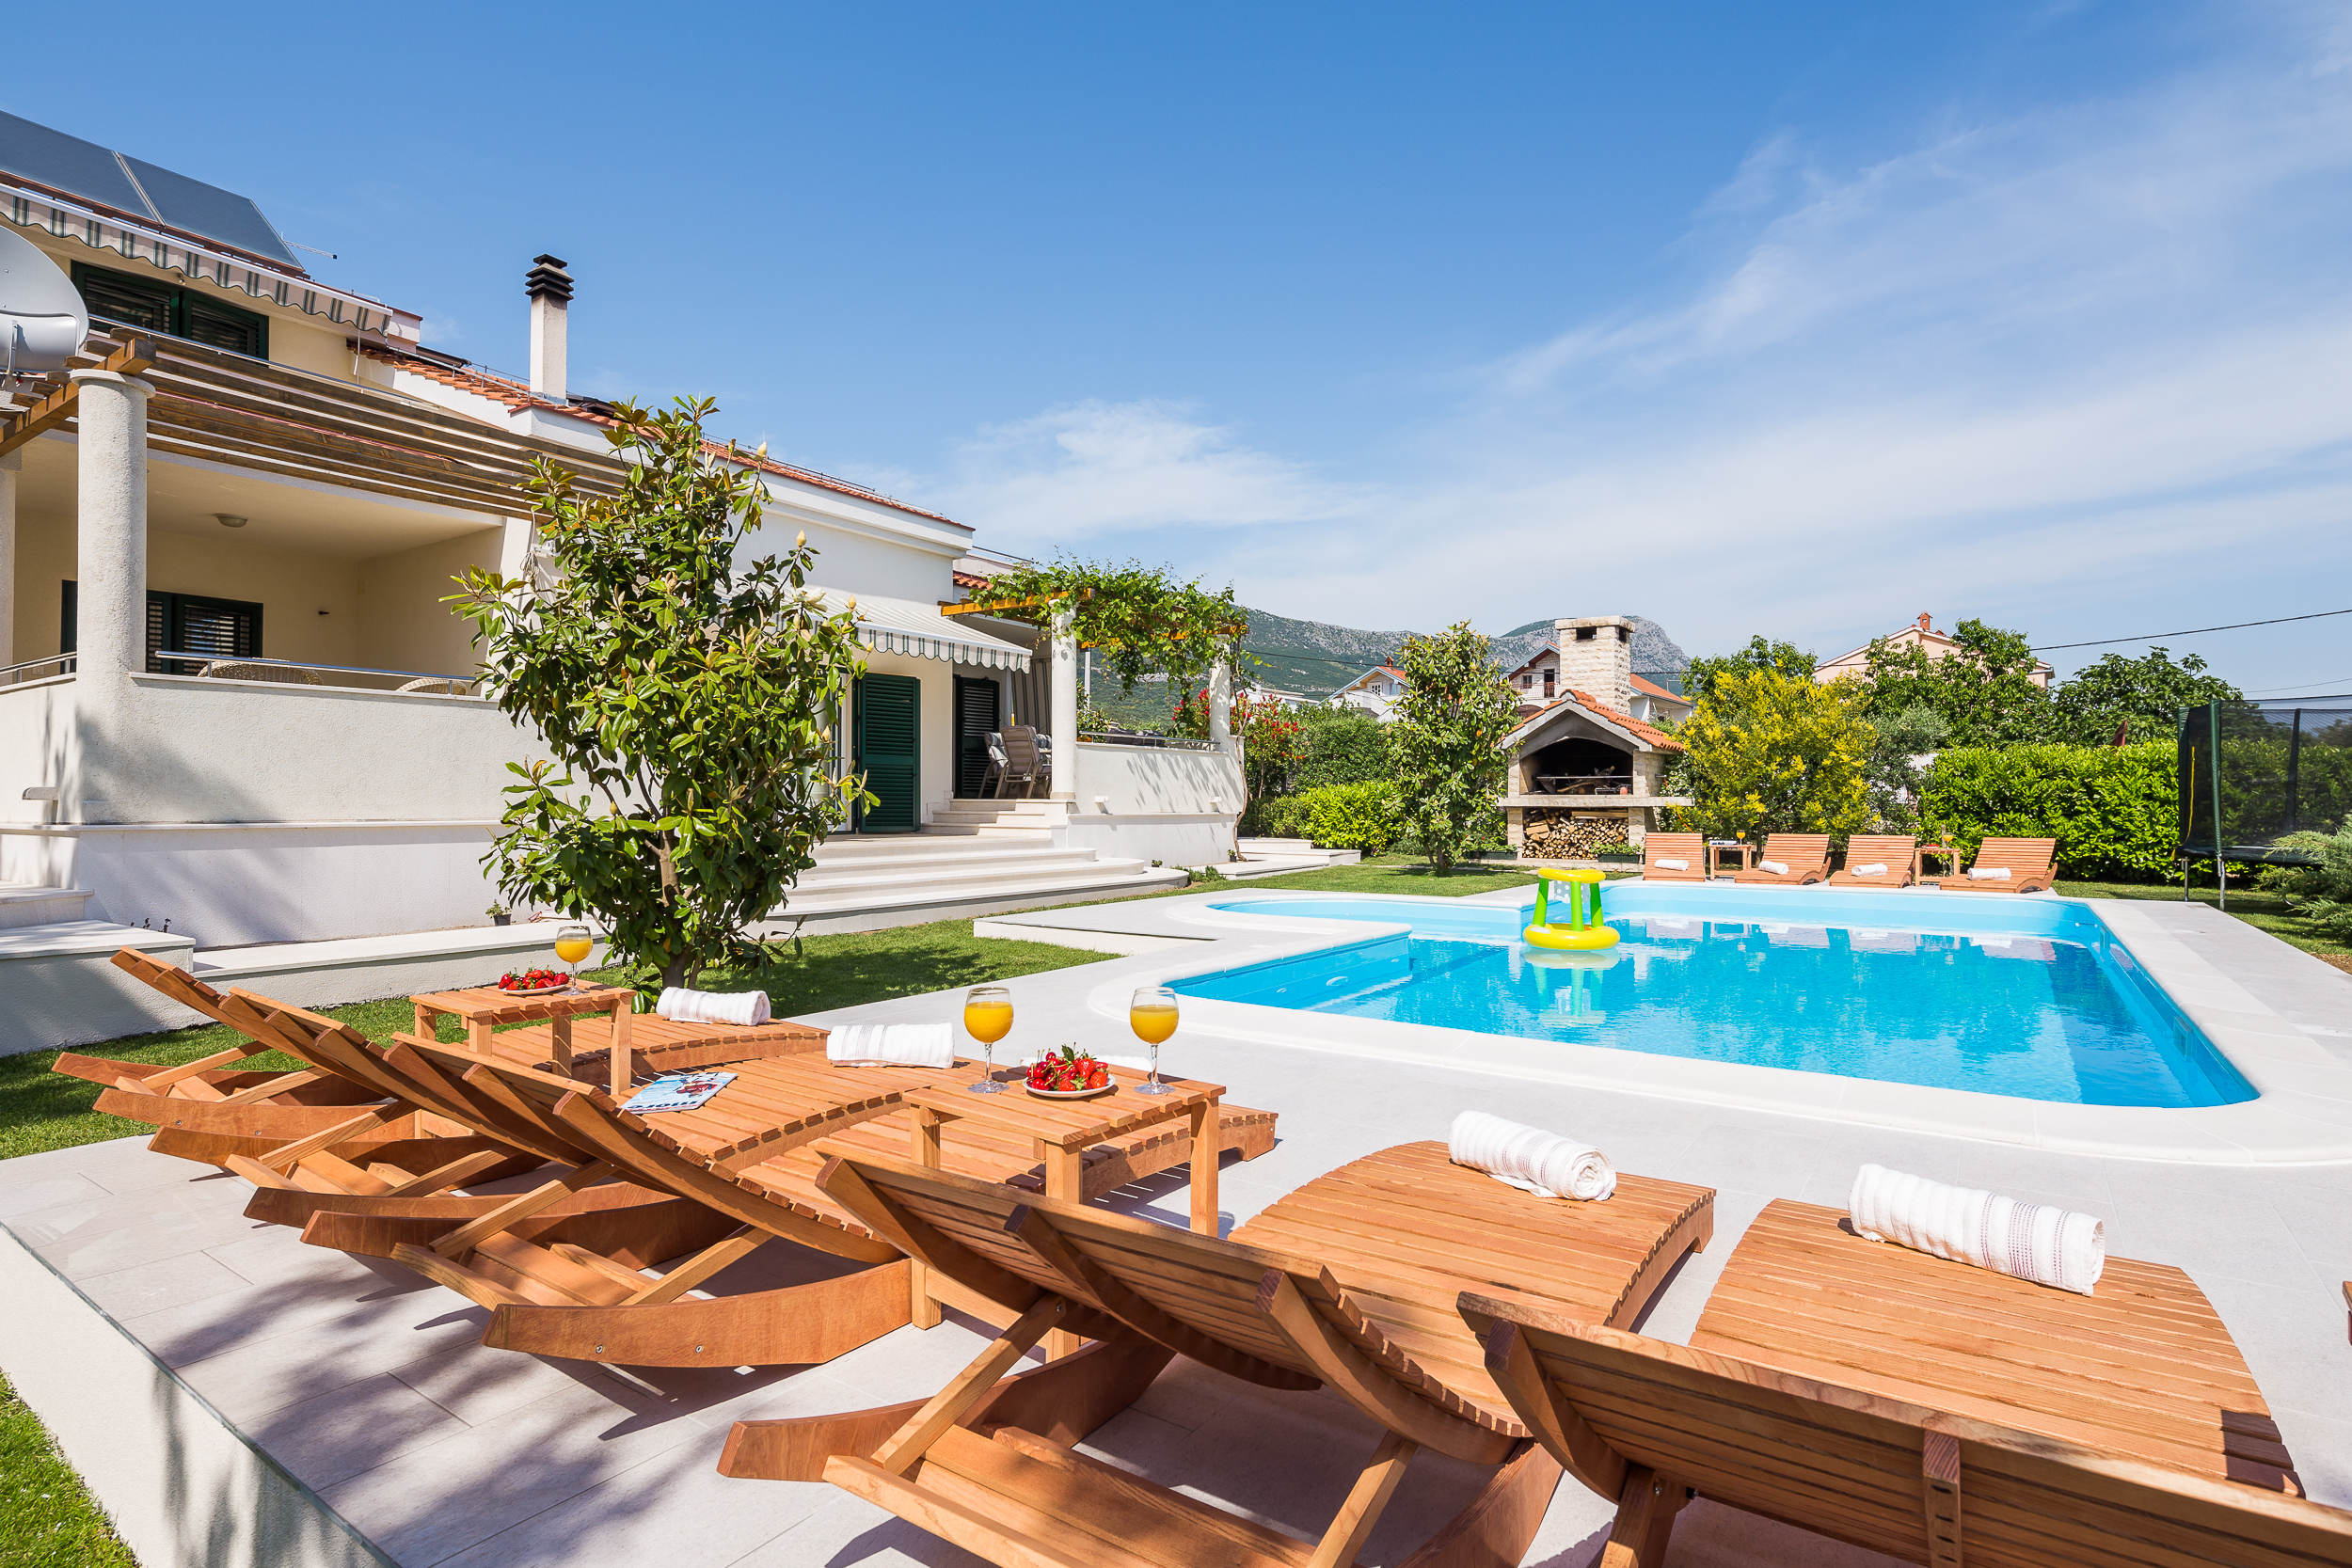 Spacious Five Bedroom Family Villa with Huge Outdoor Garden and Pool